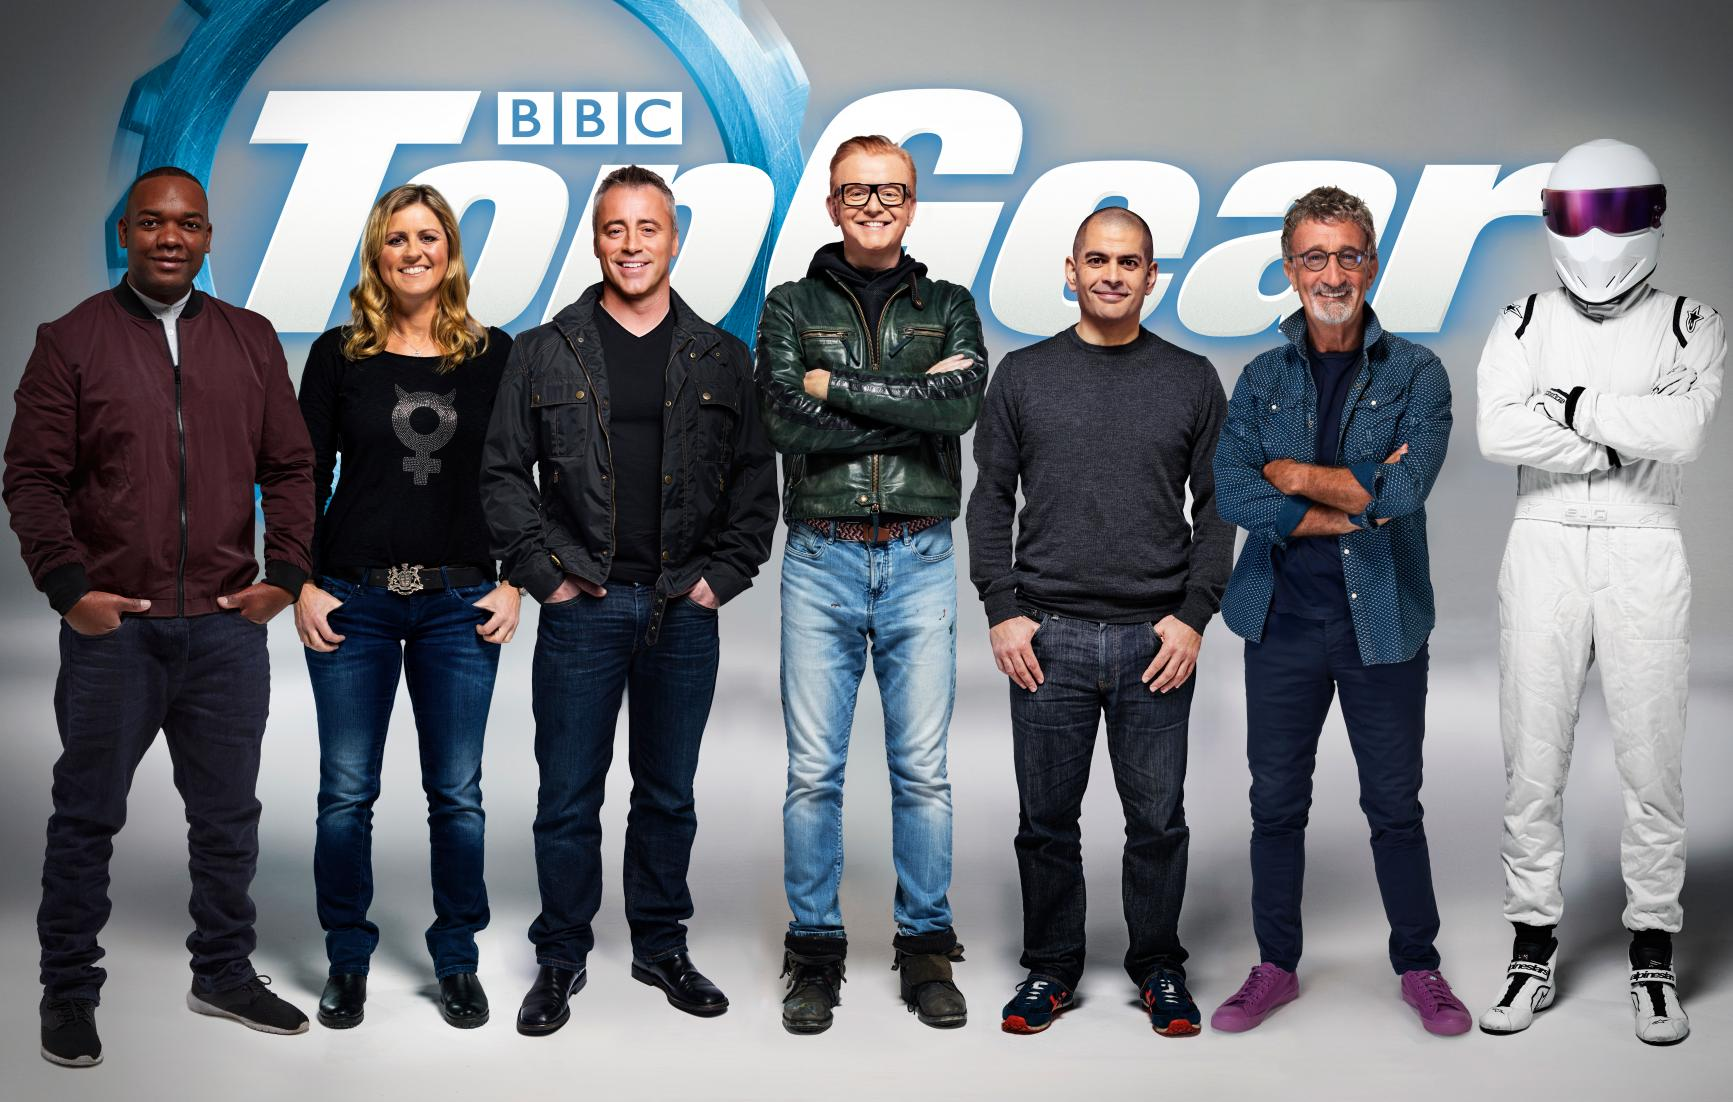 Chris Evans' Top Gear Actually Outperformed Clarkson's tg  line up maincloser af1